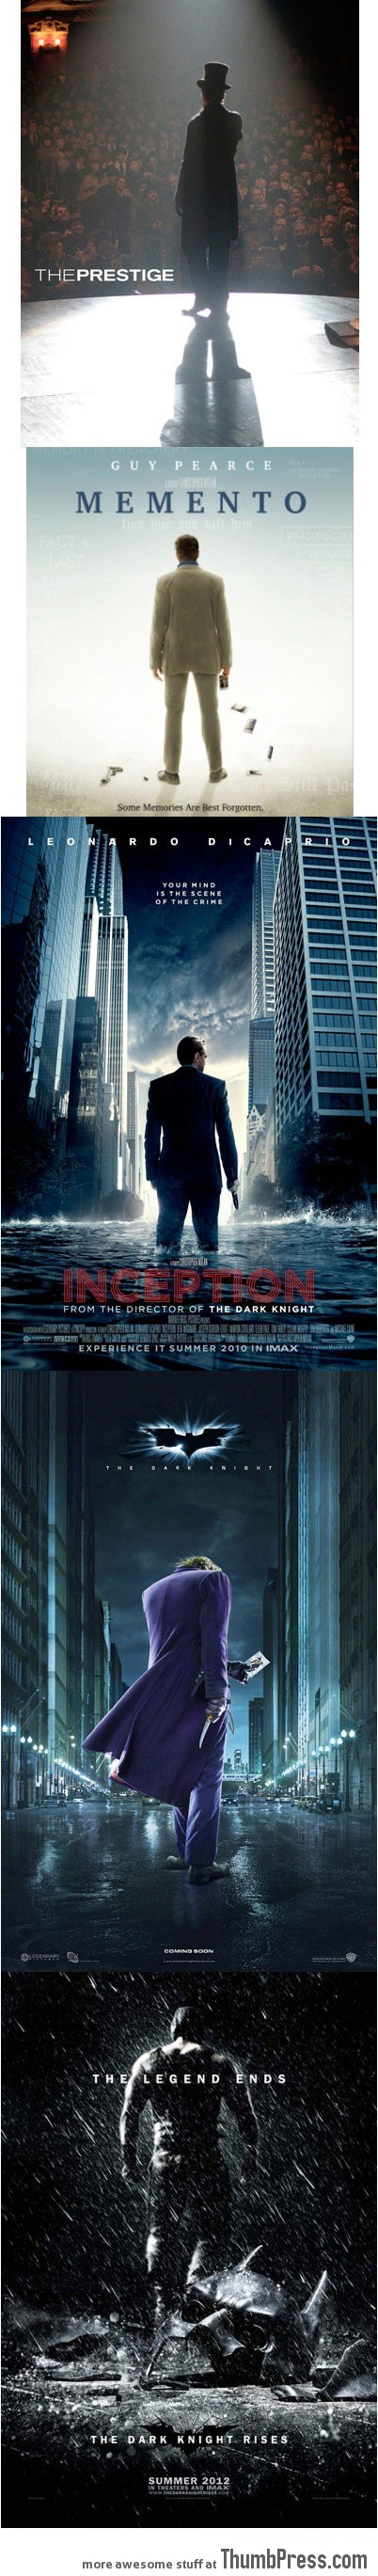 When Christopher Nolan directs, they know what kind of poster to make…